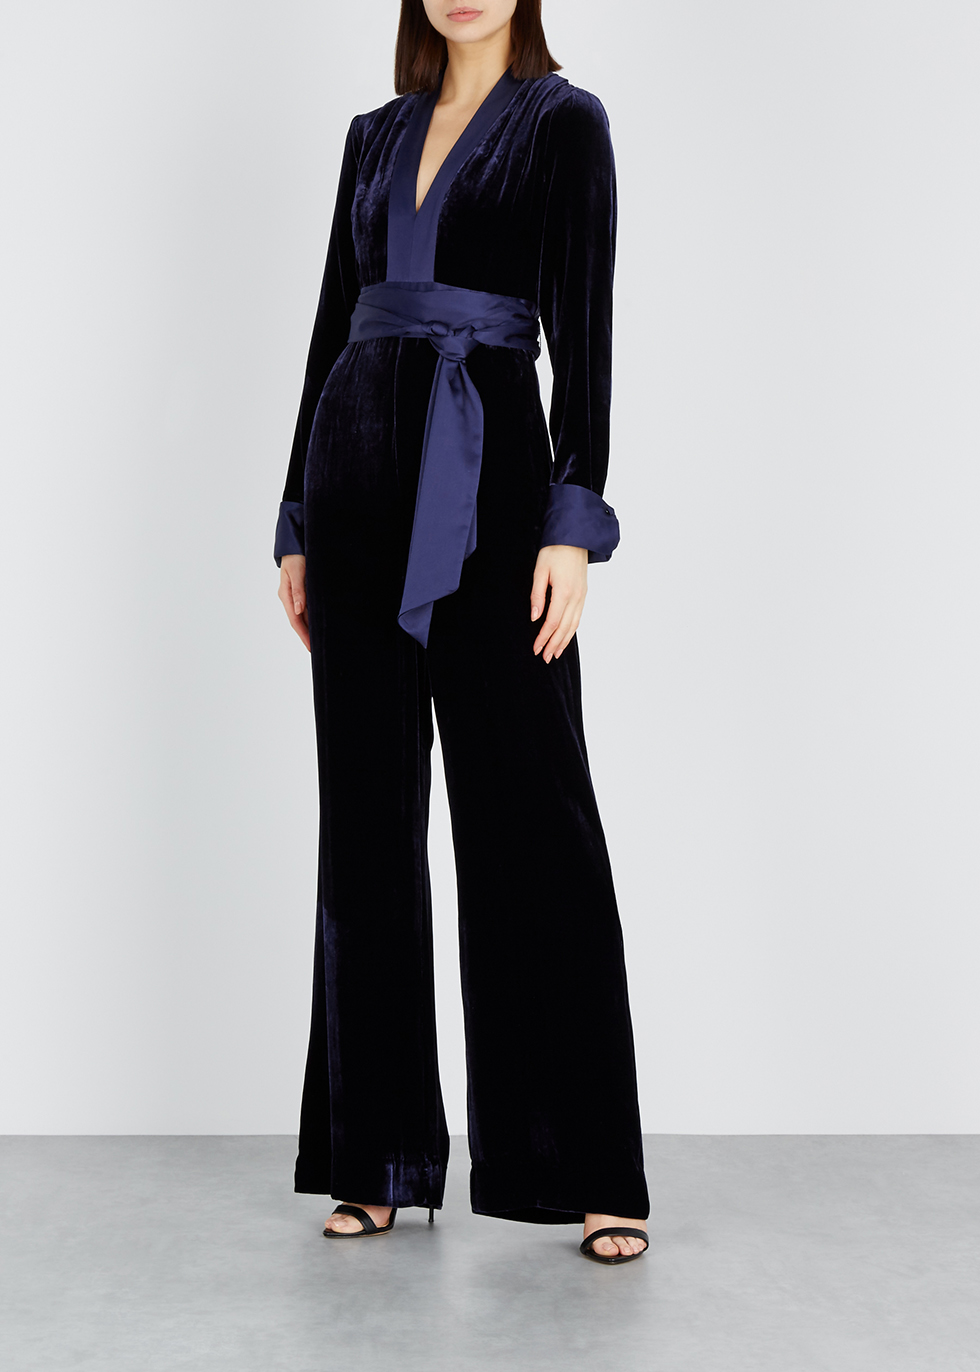 c87e4265a0e Designer Jumpsuits and Luxury Playsuits - Harvey Nichols